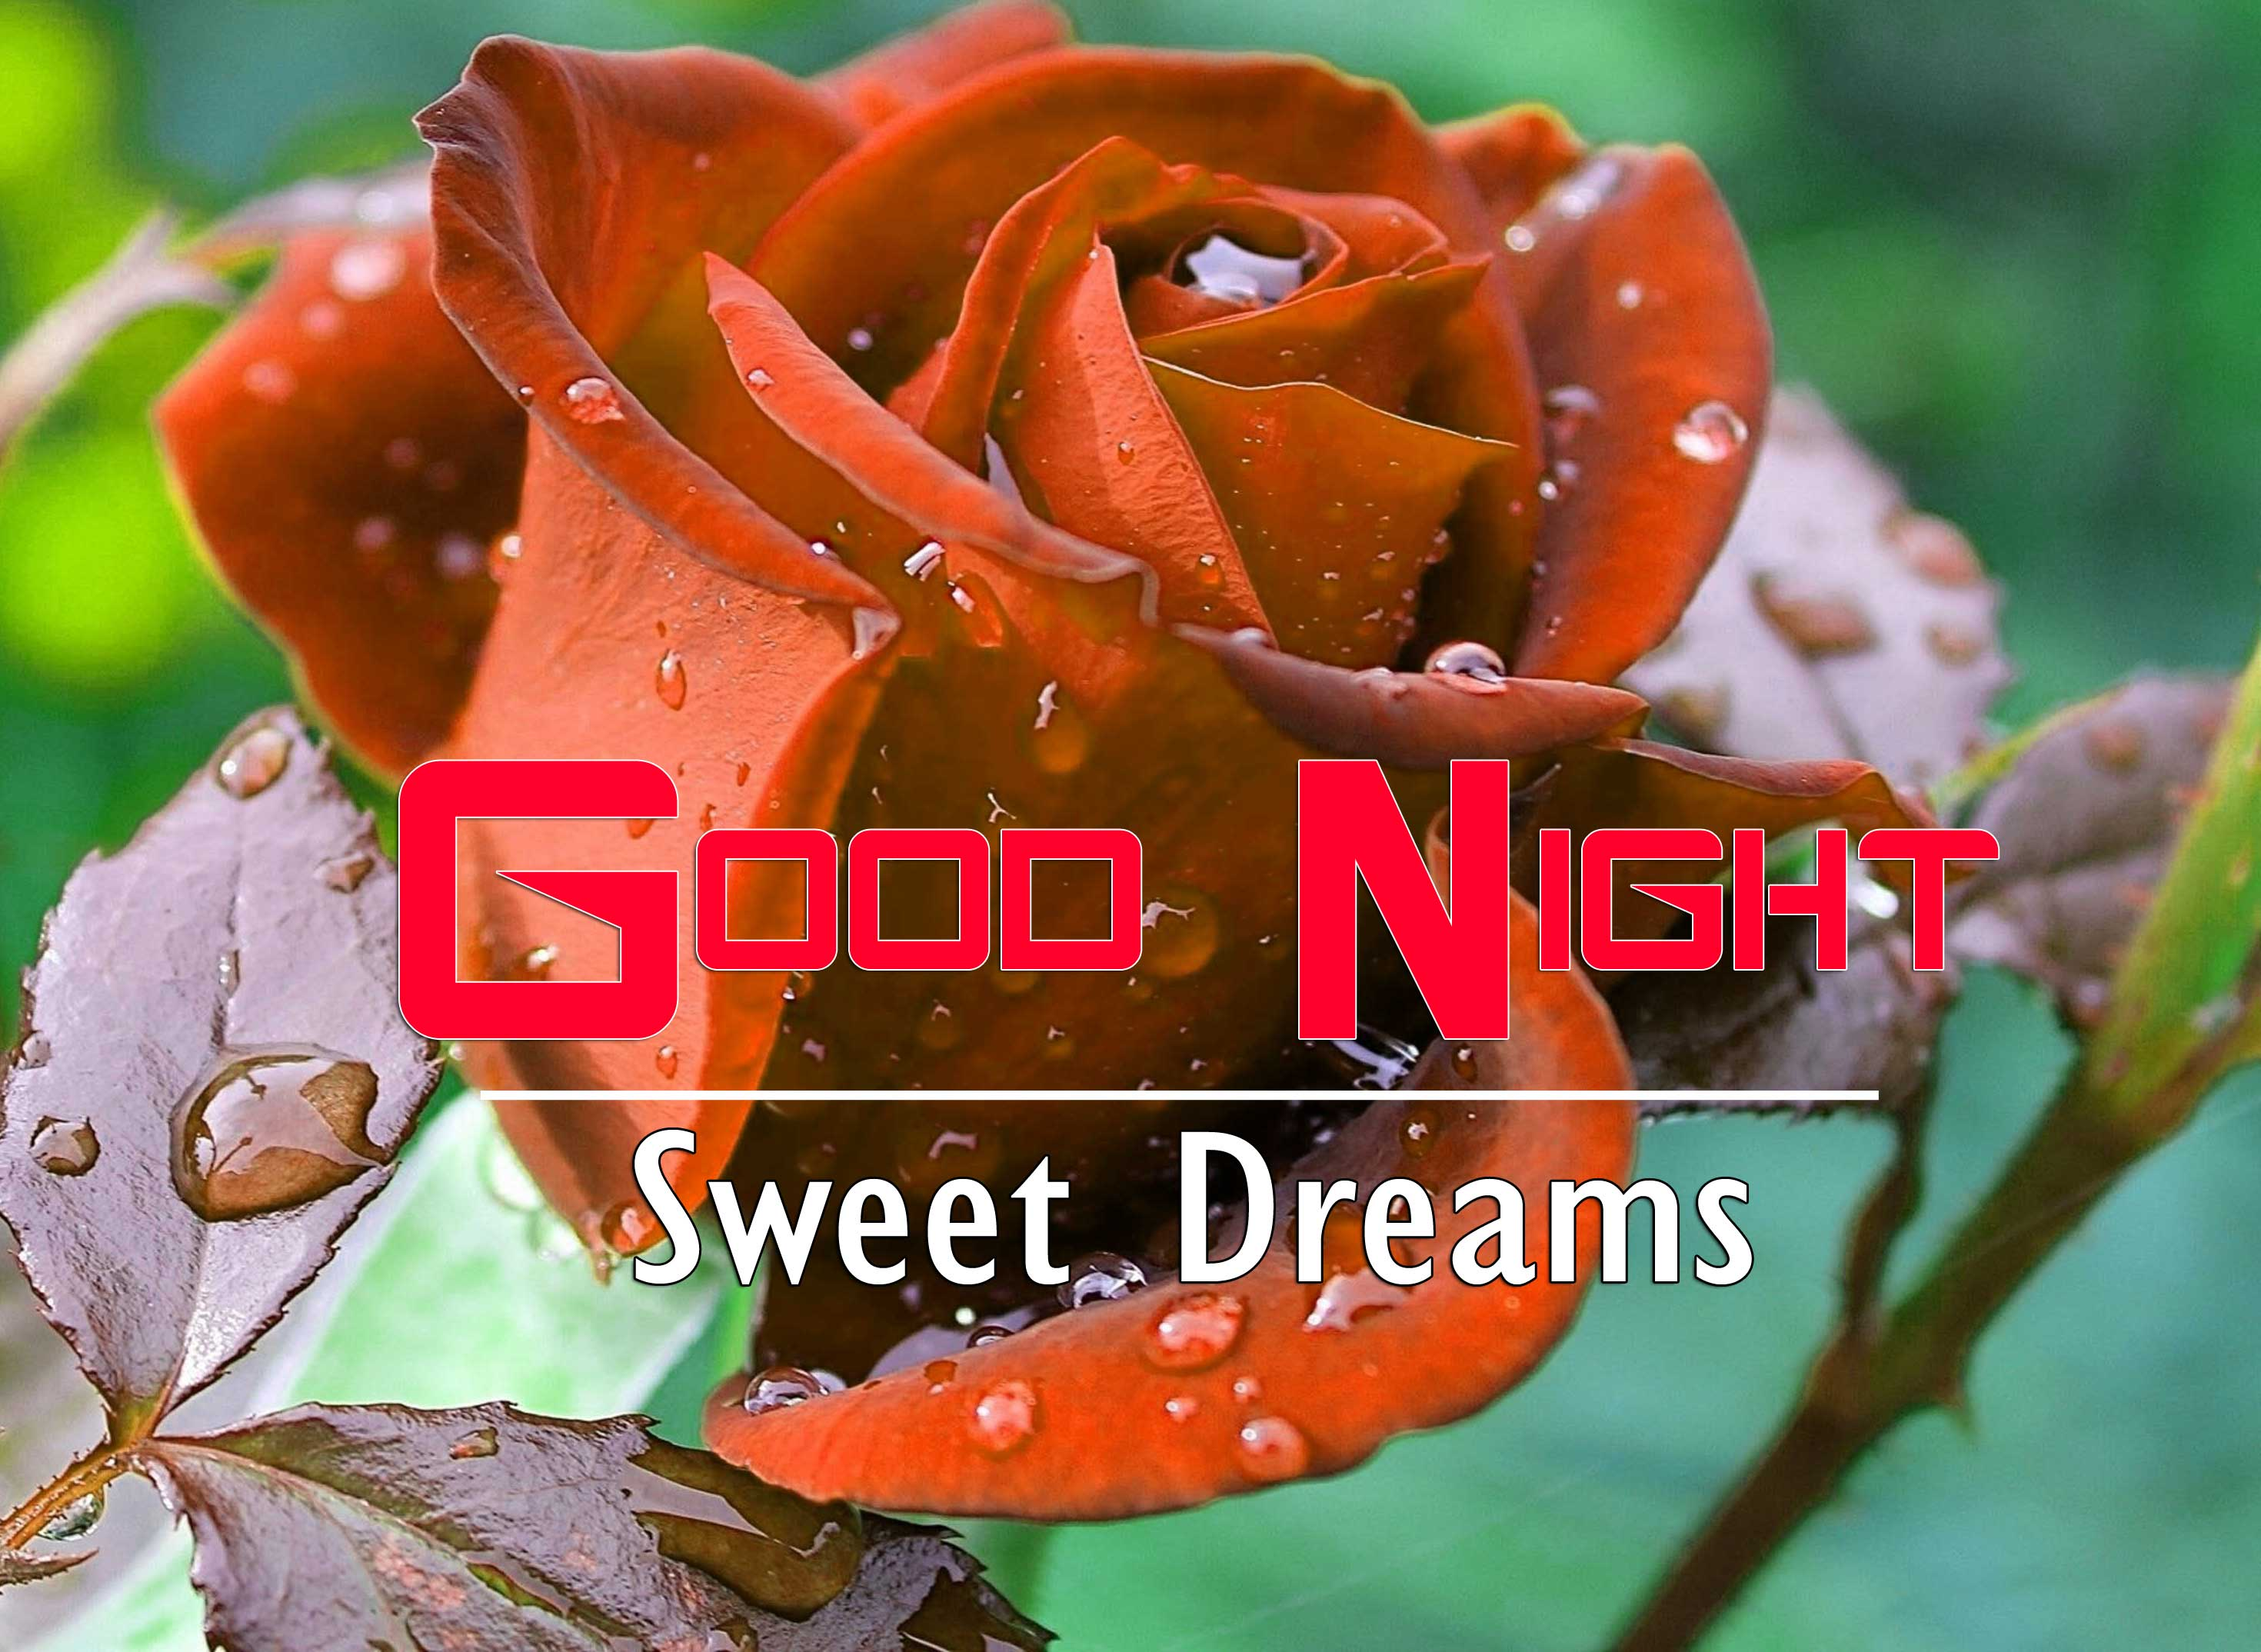 Red Rose Free Full HD Good Night Pics Images